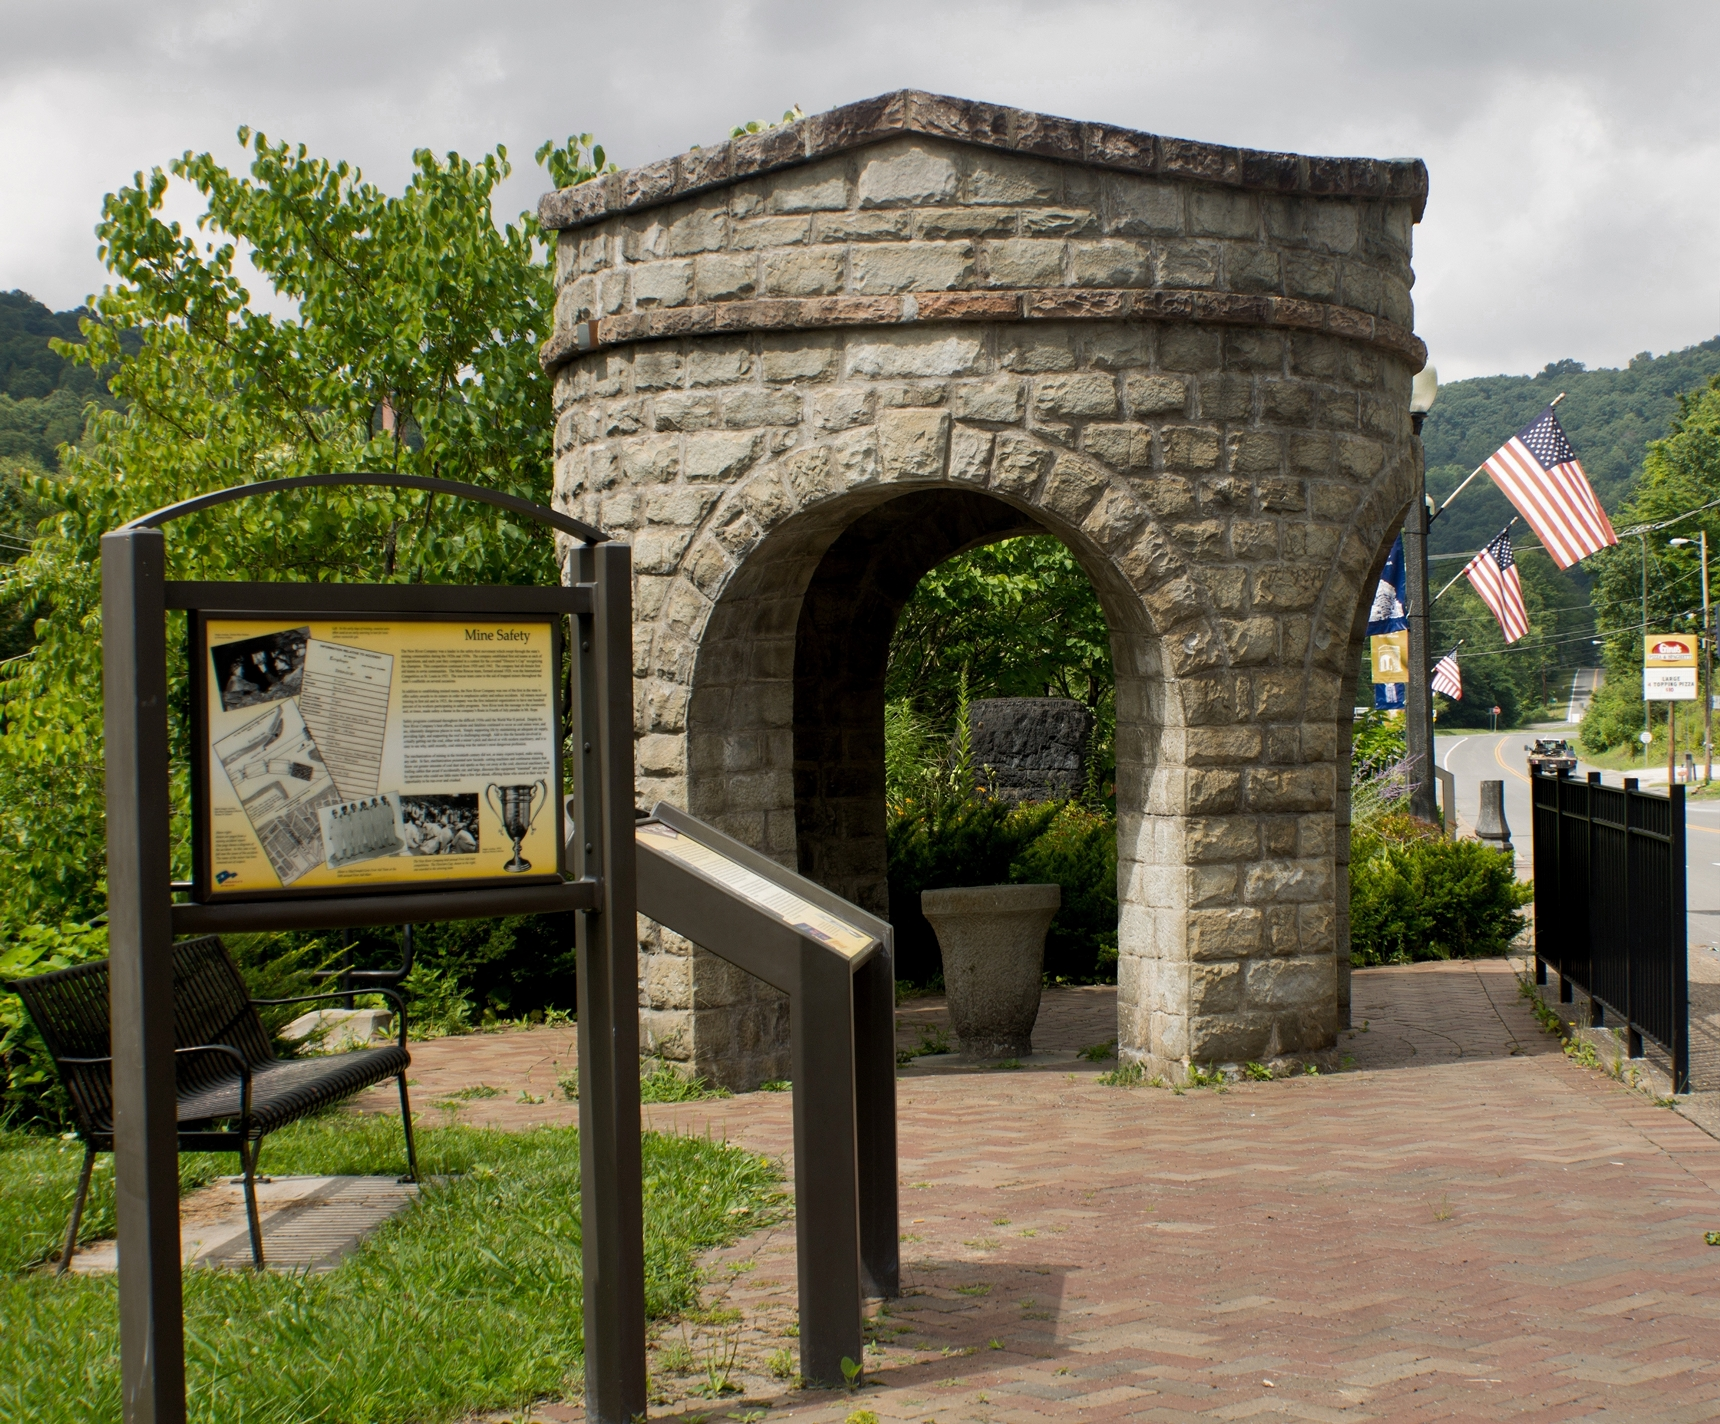 Stone fountain with interpretive signage visible